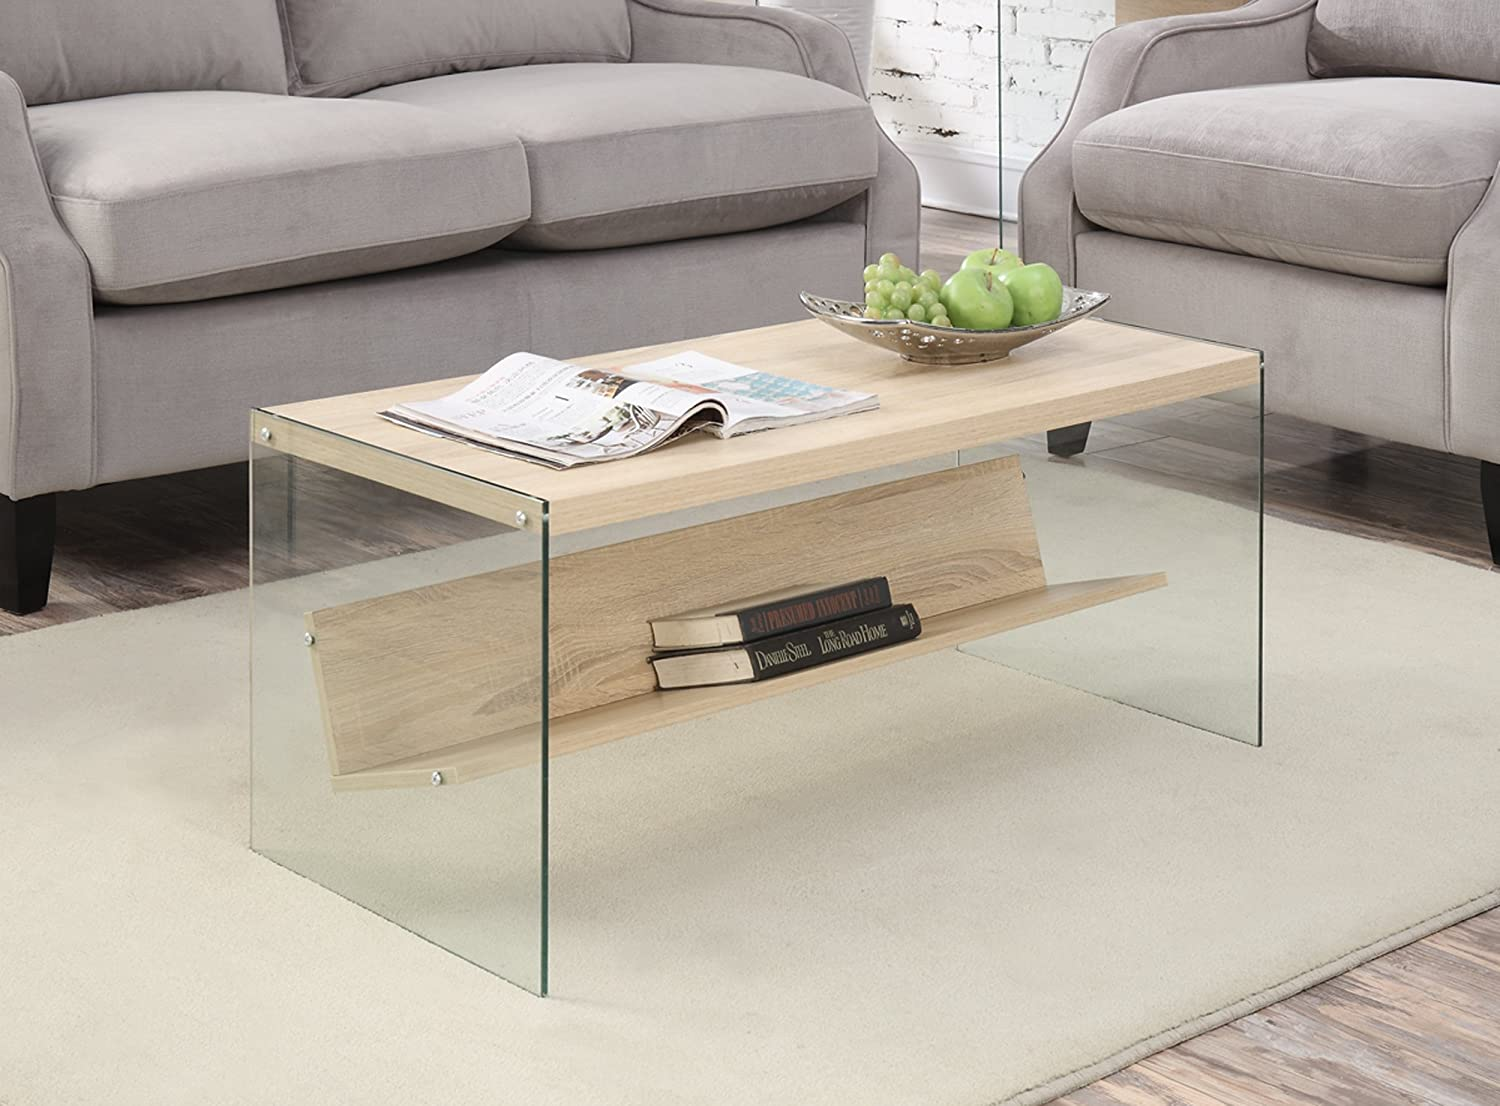 White glass coffee table - Amazon Com Convenience Concepts Soho Coffee Table Weathered White Kitchen Dining